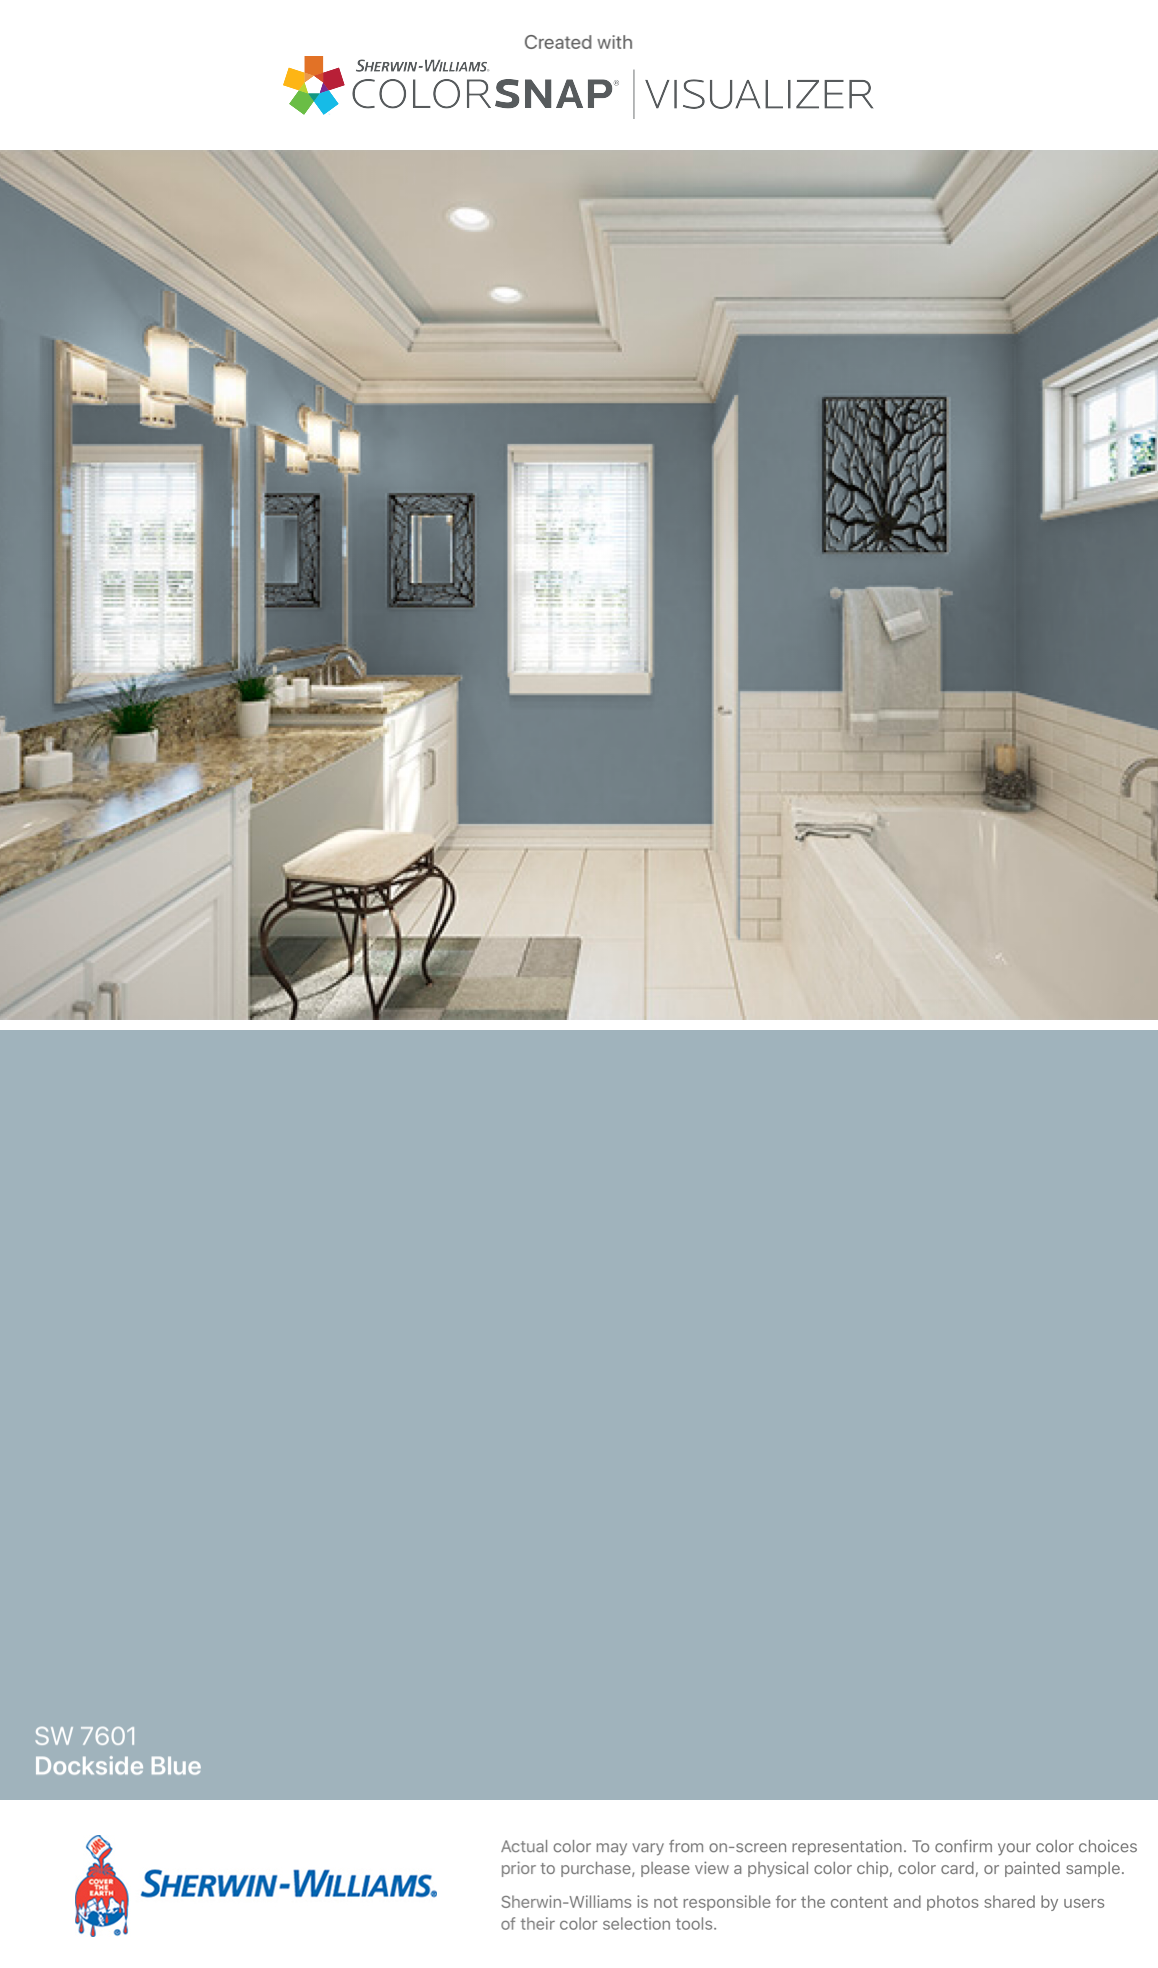 I Found This Color With Colorsnap Visualizer For Iphone By Sherwin Williams Dockside Blue Sw Paint Colors For Home Bedroom Paint Colors Master Bedroom Paint